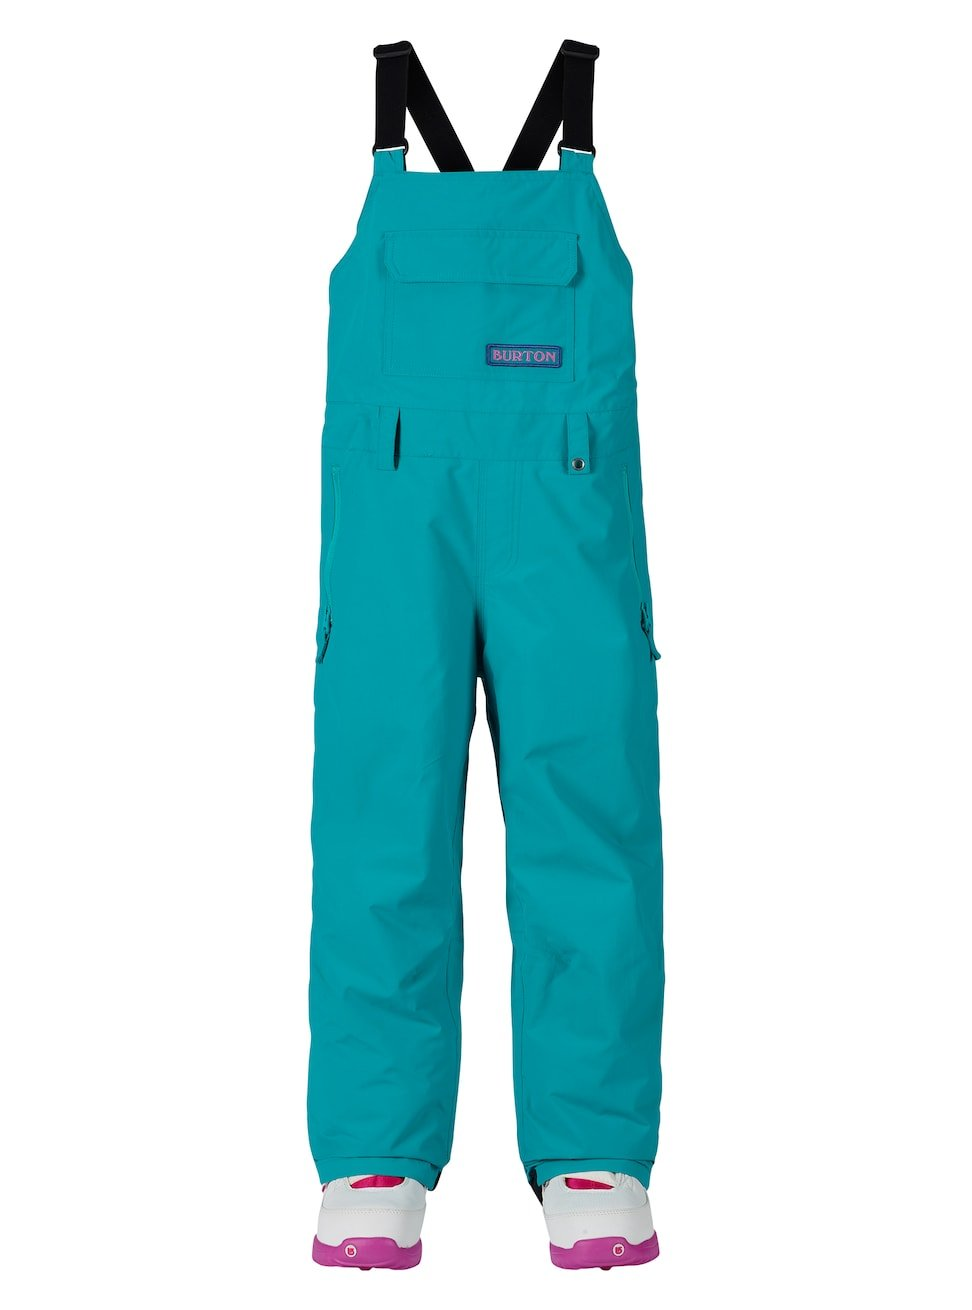 Burton Youth Skylar Bib Pants, Everglade, Large